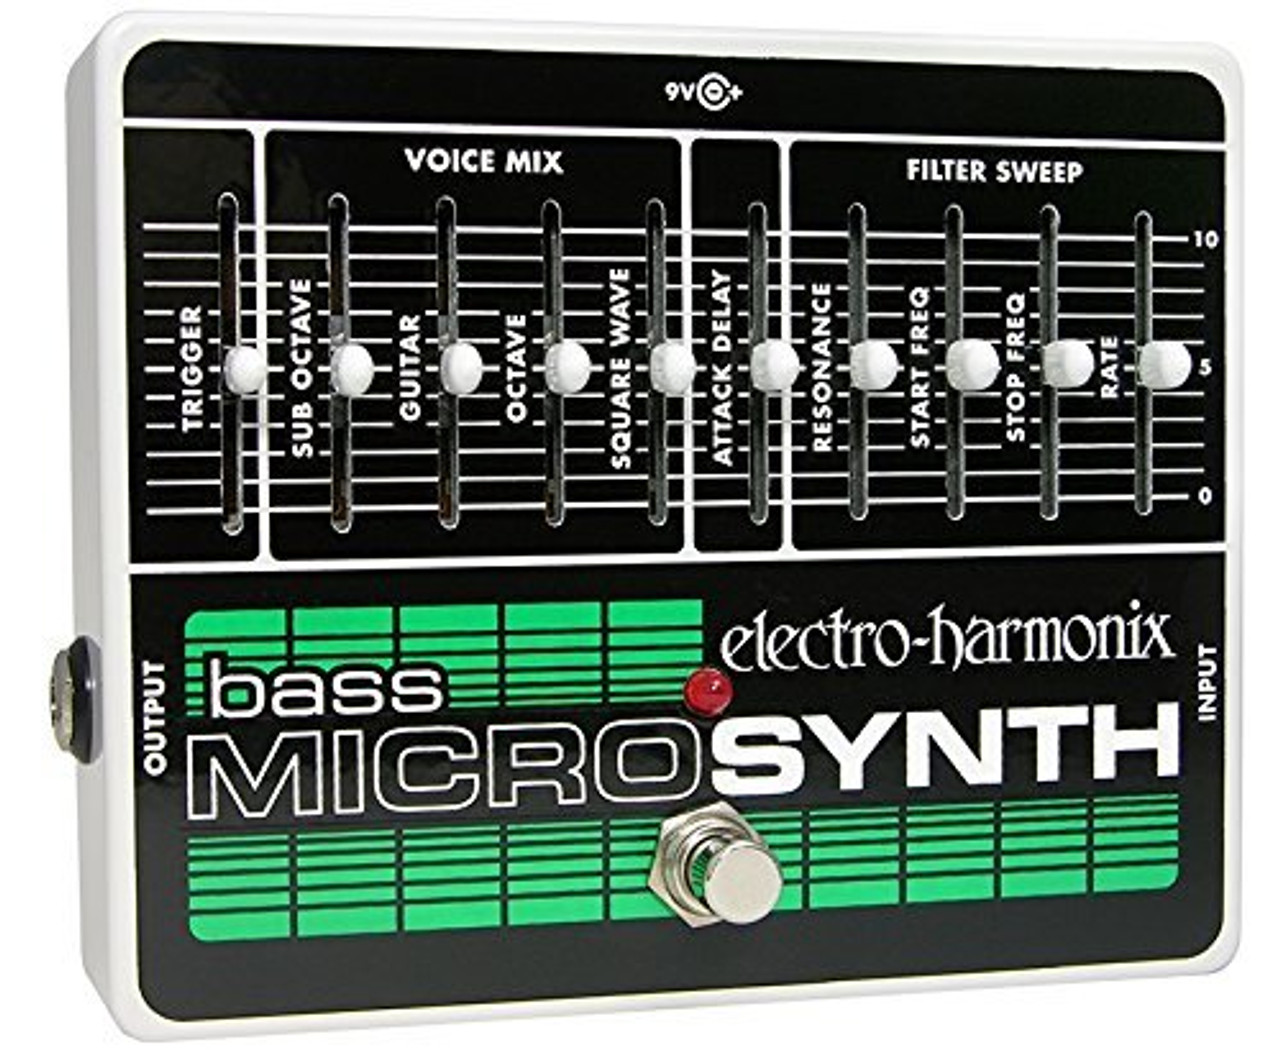 Electro Harmonix BASS MICROSYNTH Analog/Synthesizer, 9.6DC-200 PSU included